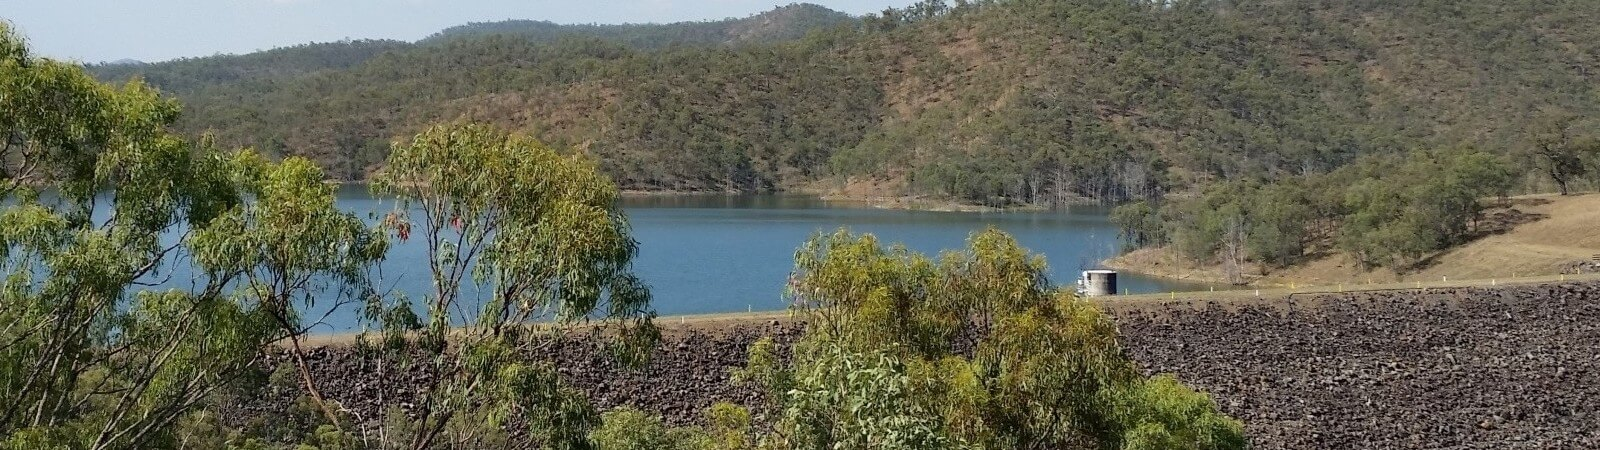 View-From-Cania-Dam-Lookout-1600